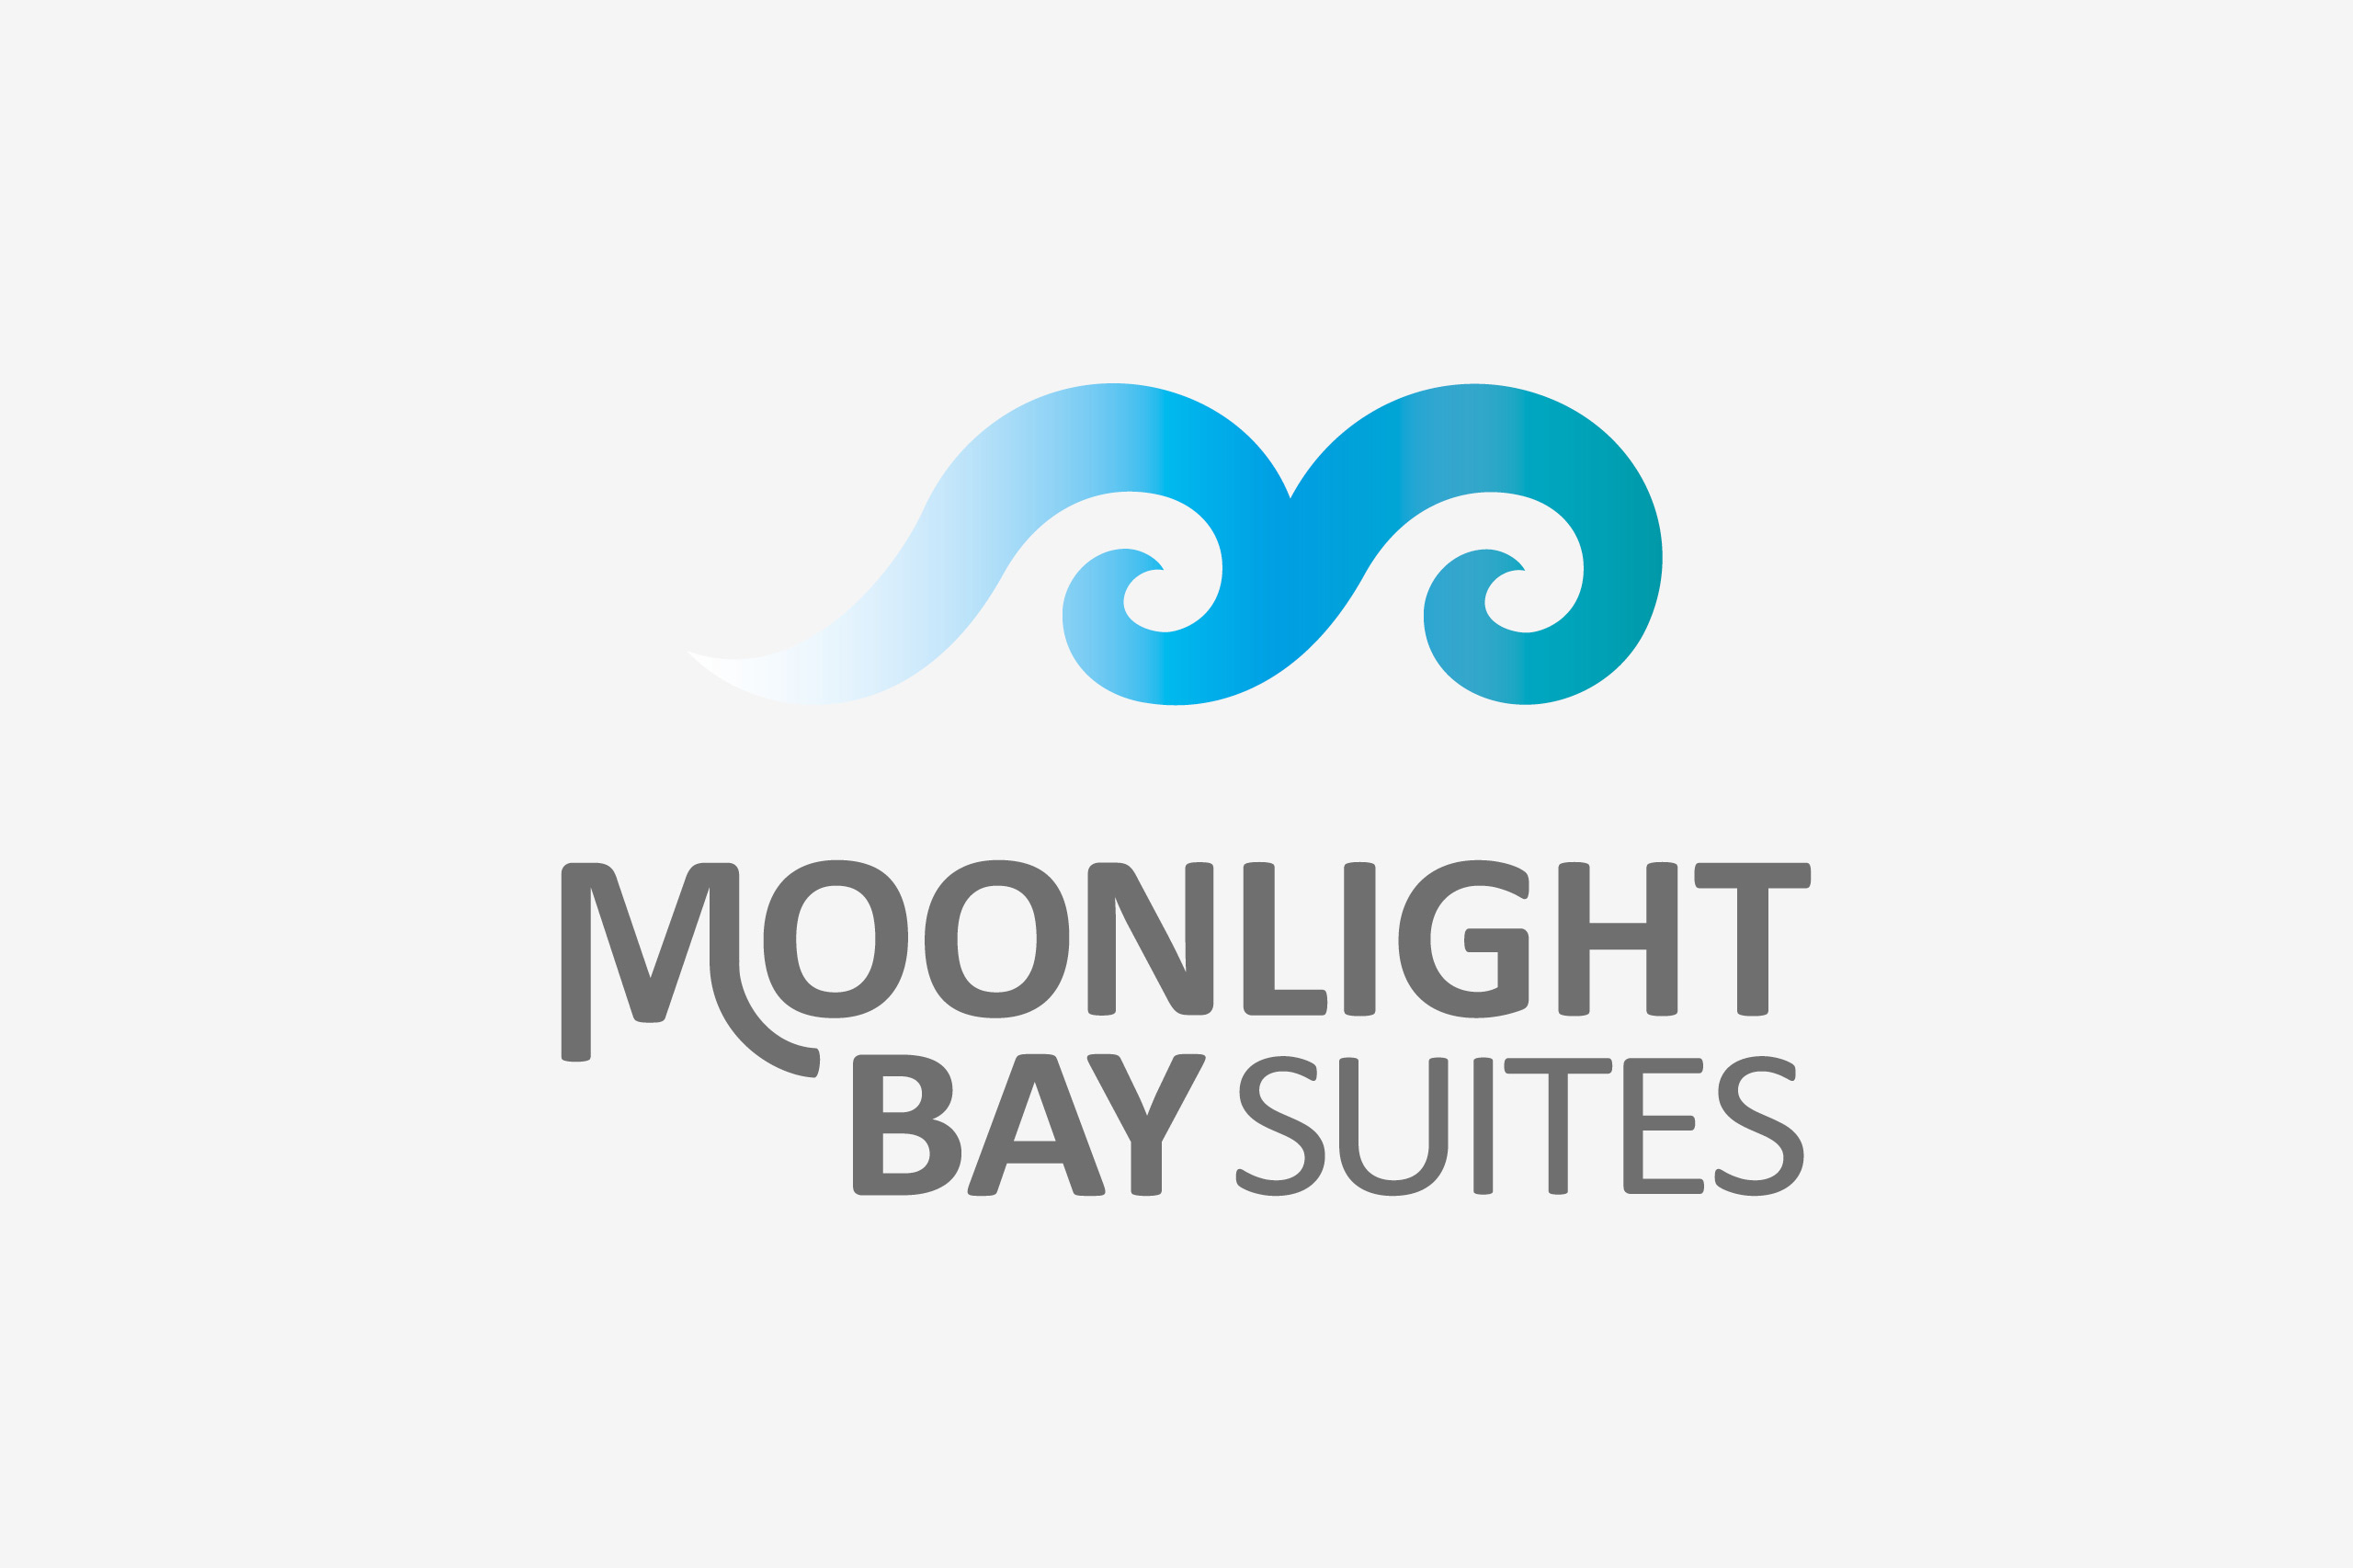 moonlight bay suites logo maker and co design